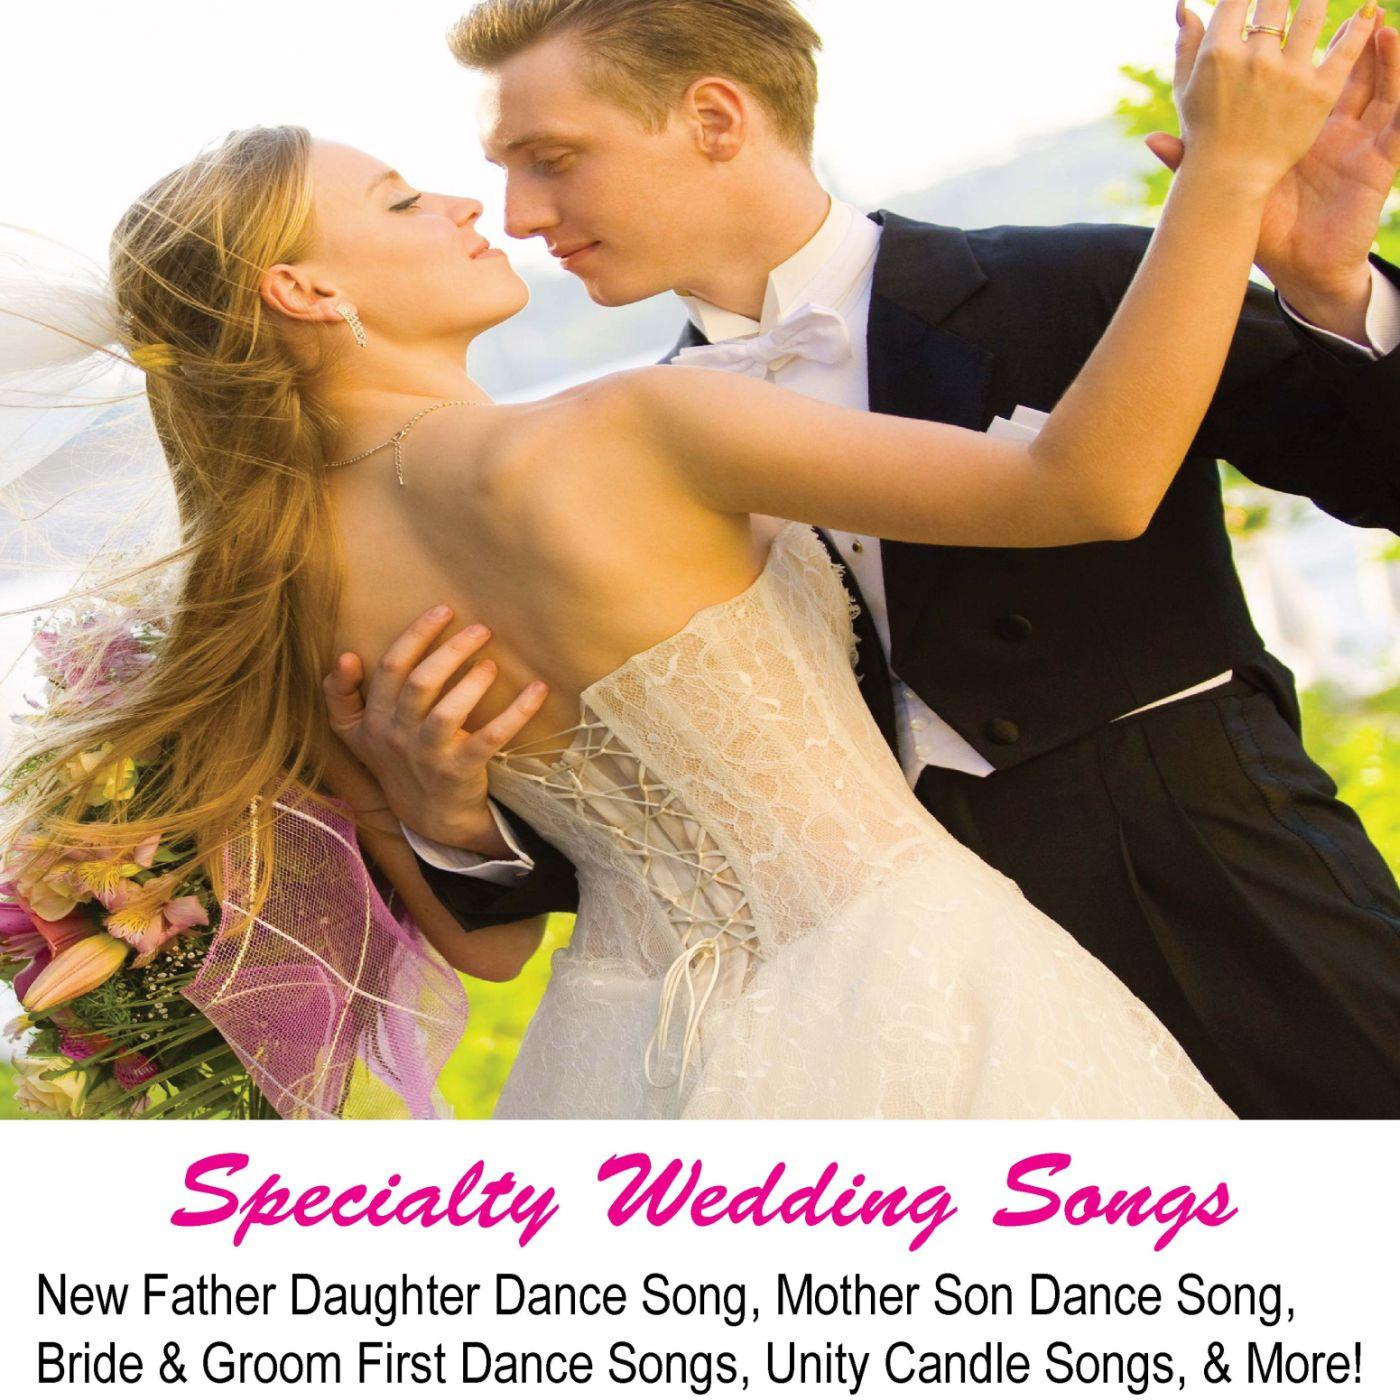 Specialty Wedding Songs